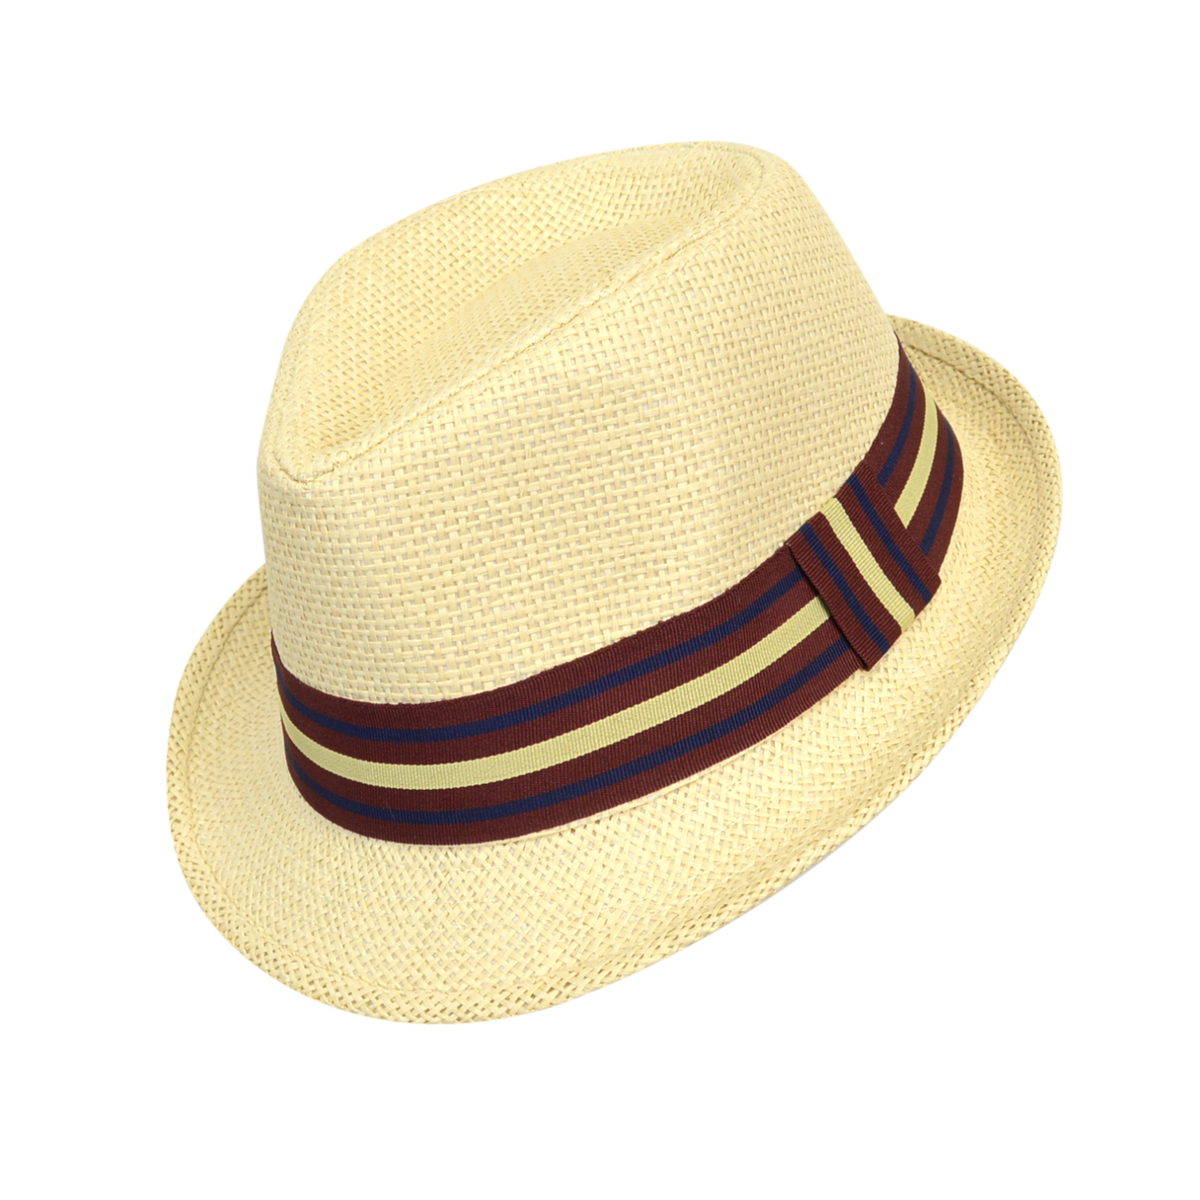 43a8c8fa 6pc Boy's Spring/Summer Cream Straw Fedora Hats with Burgundy/Navy Striped  Band